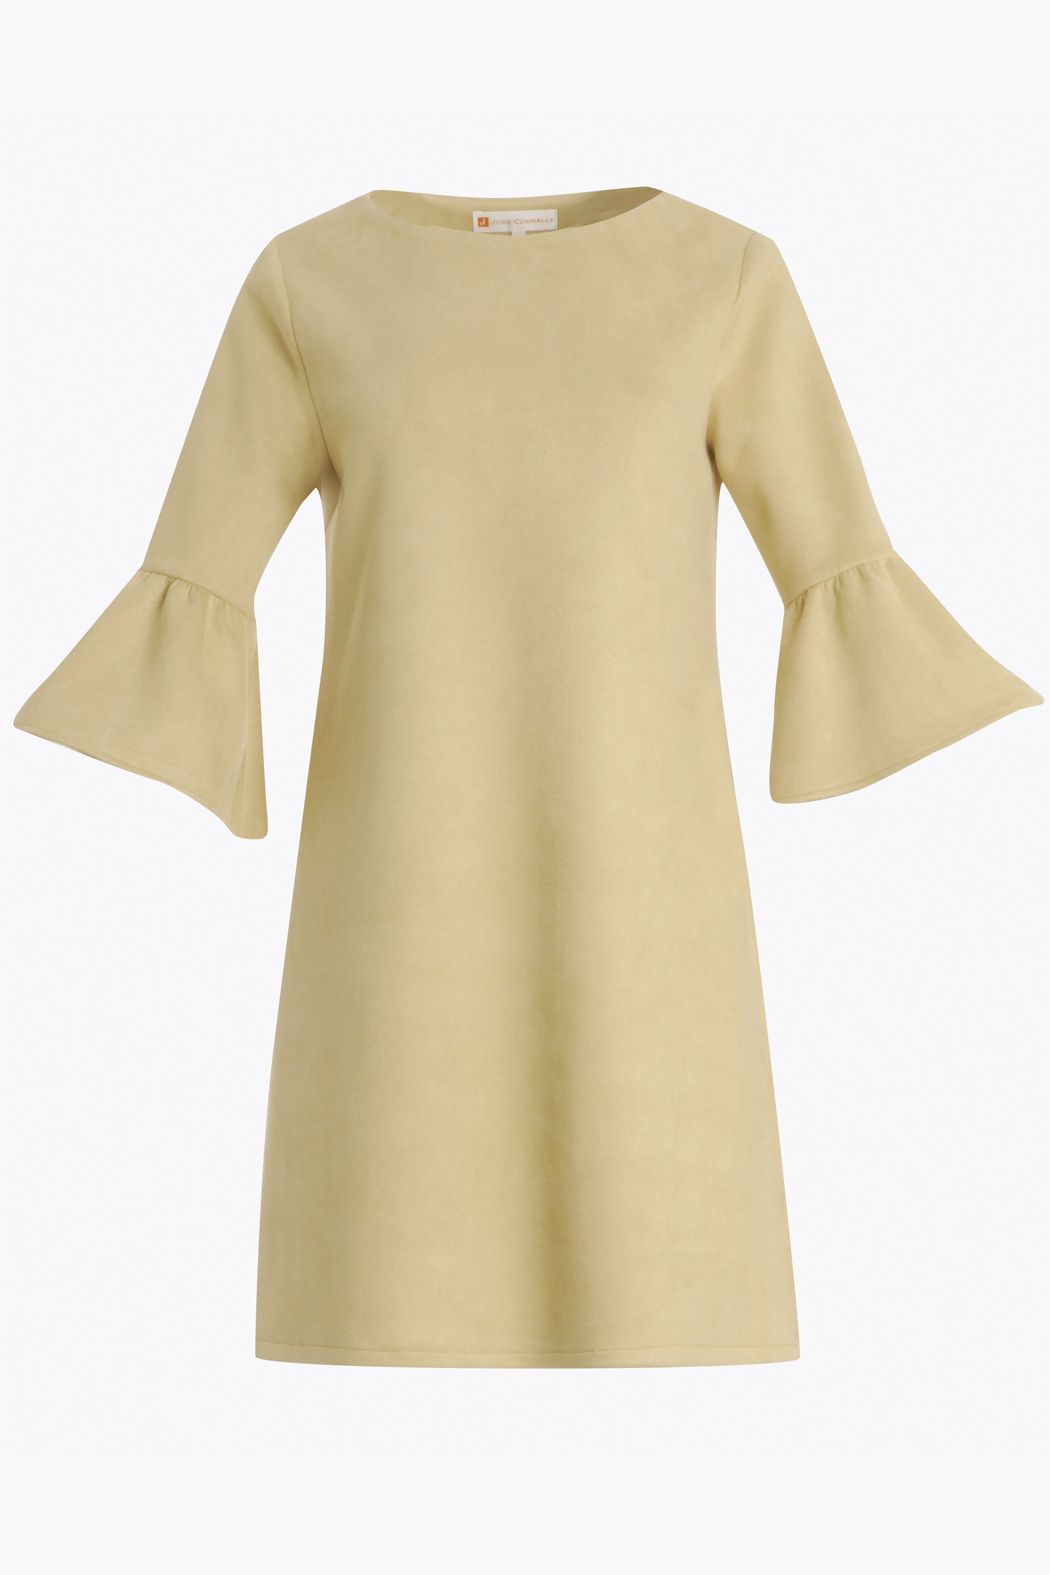 Jude Connally Shelby Faux Suede Dress - Side Cropped Image